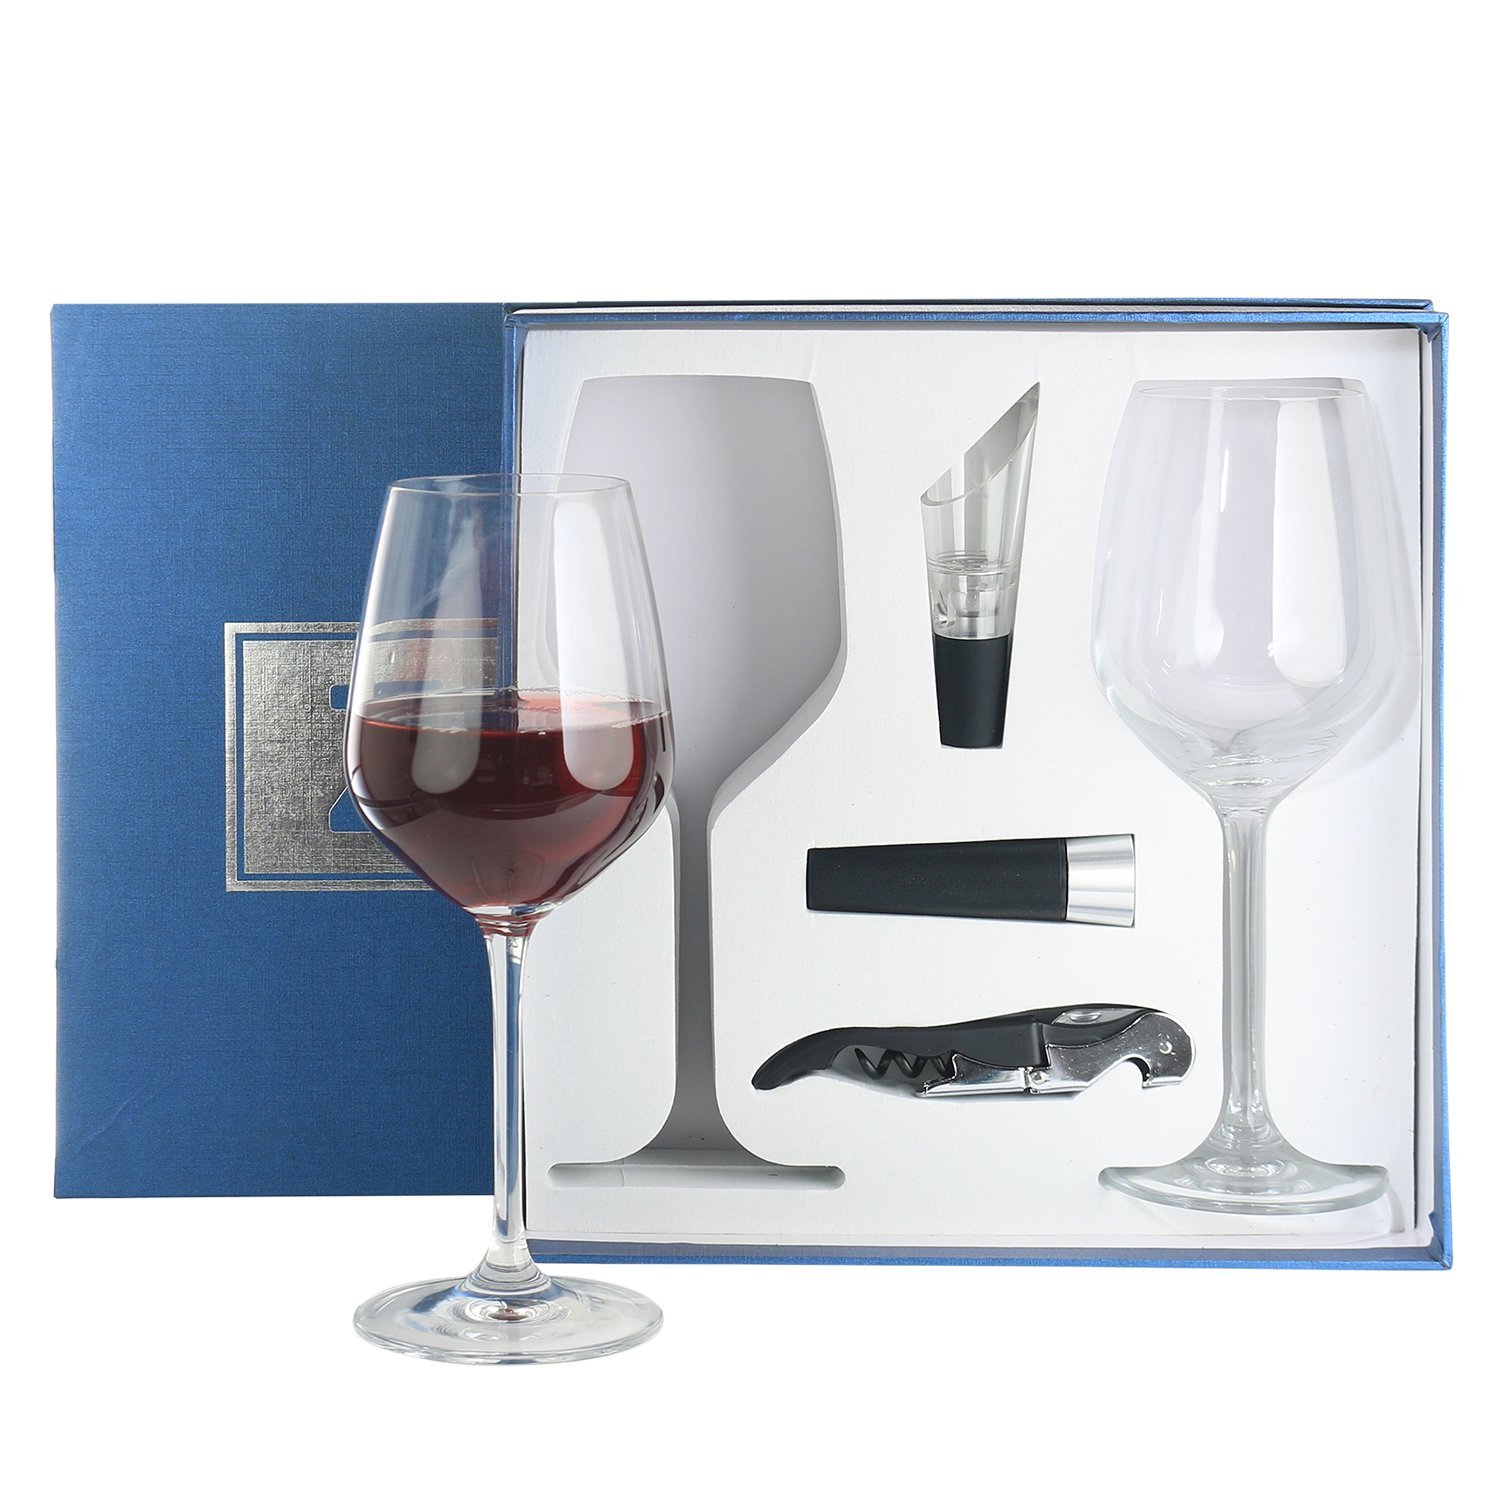 Zalik Wine Glasses Gift Set - Set Of 2 Wine Glasses, Wine Opener, Wine Stopper And Wine Aerator Pourer For Enhanced Flavor - Perfect Gift For Every Occasion - Wine Accessories - Elegant Gift Box by Zalik (Image #6)